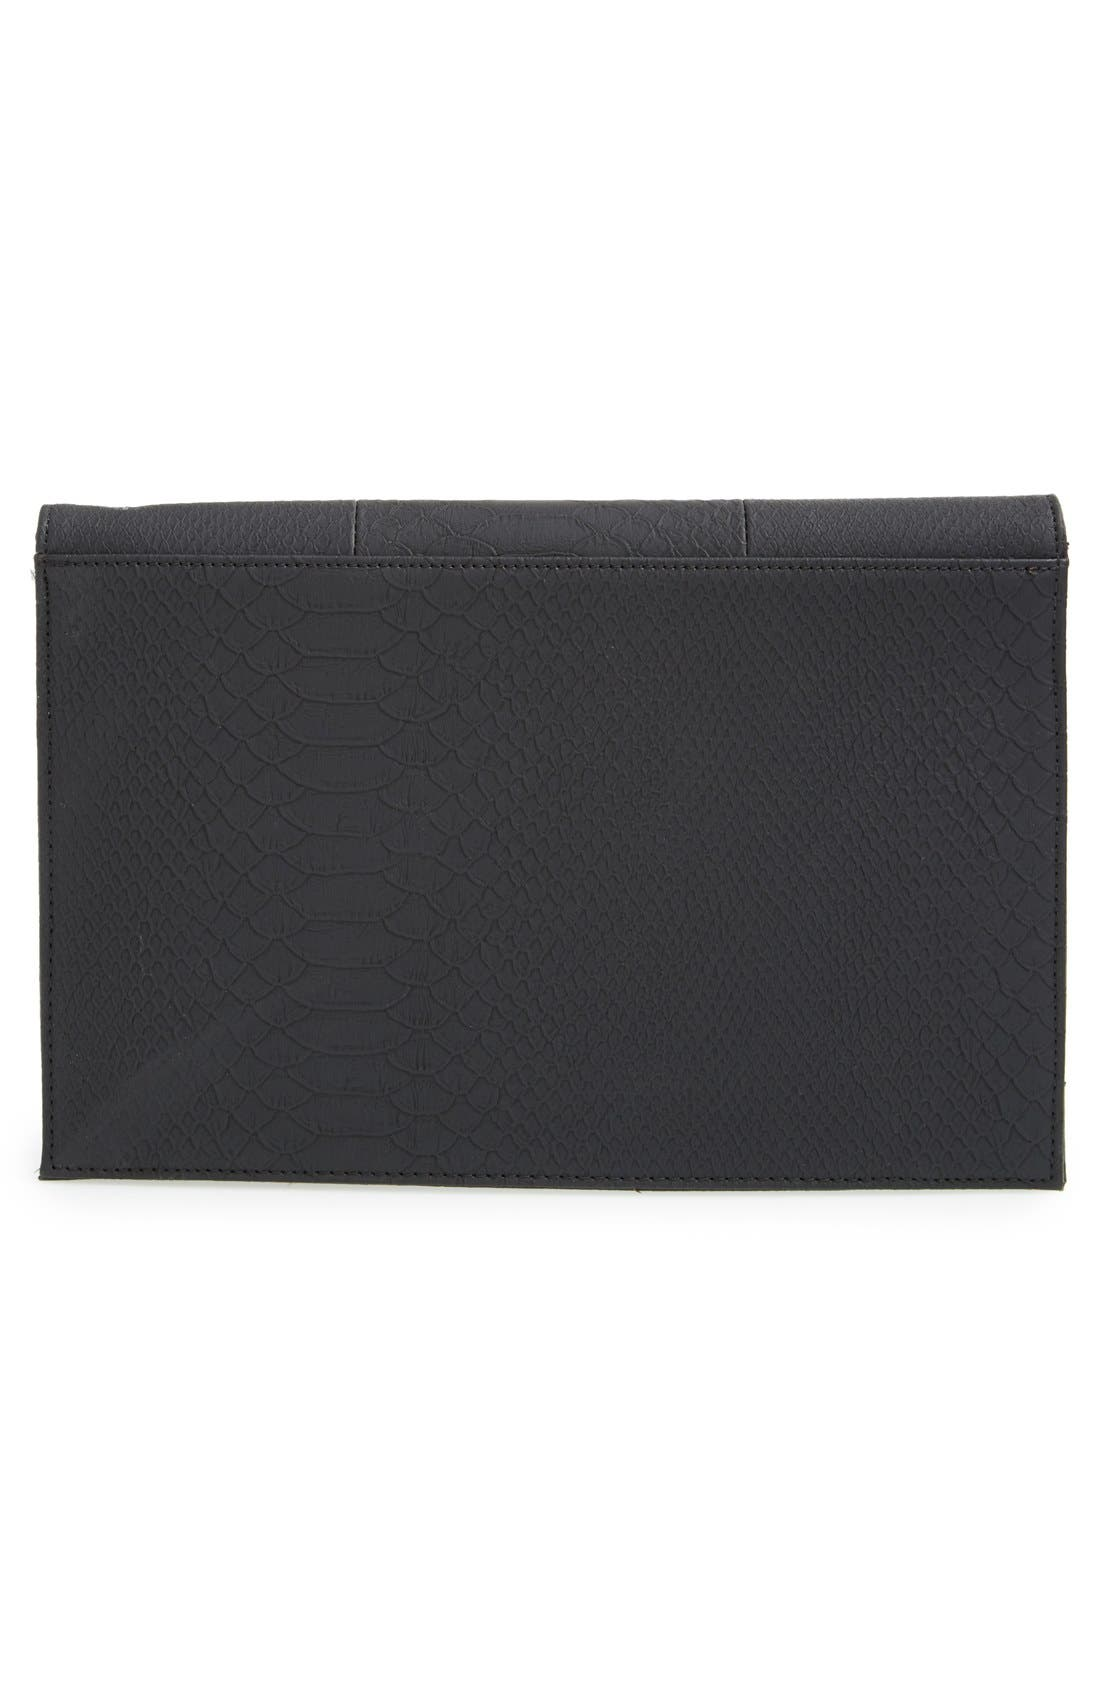 Alternate Image 3  - BCBGMAXAZRIA 'Kelly' Envelope Clutch